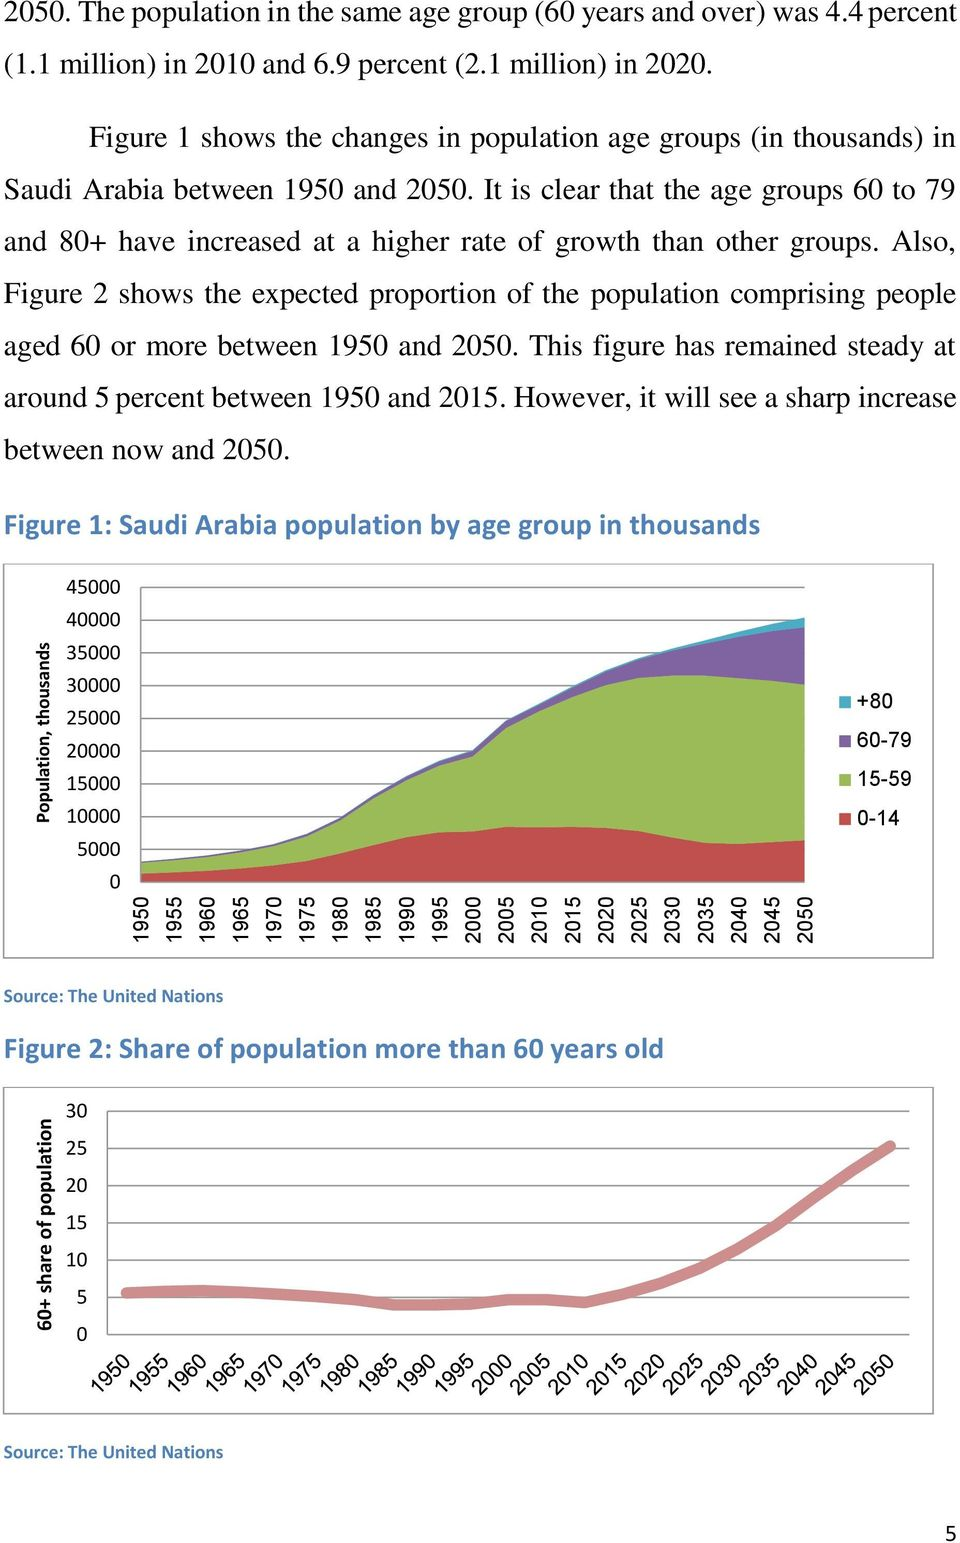 Figure 1 shows the changes in population age groups (in thousands) in Saudi Arabia between 1950 and 2050.